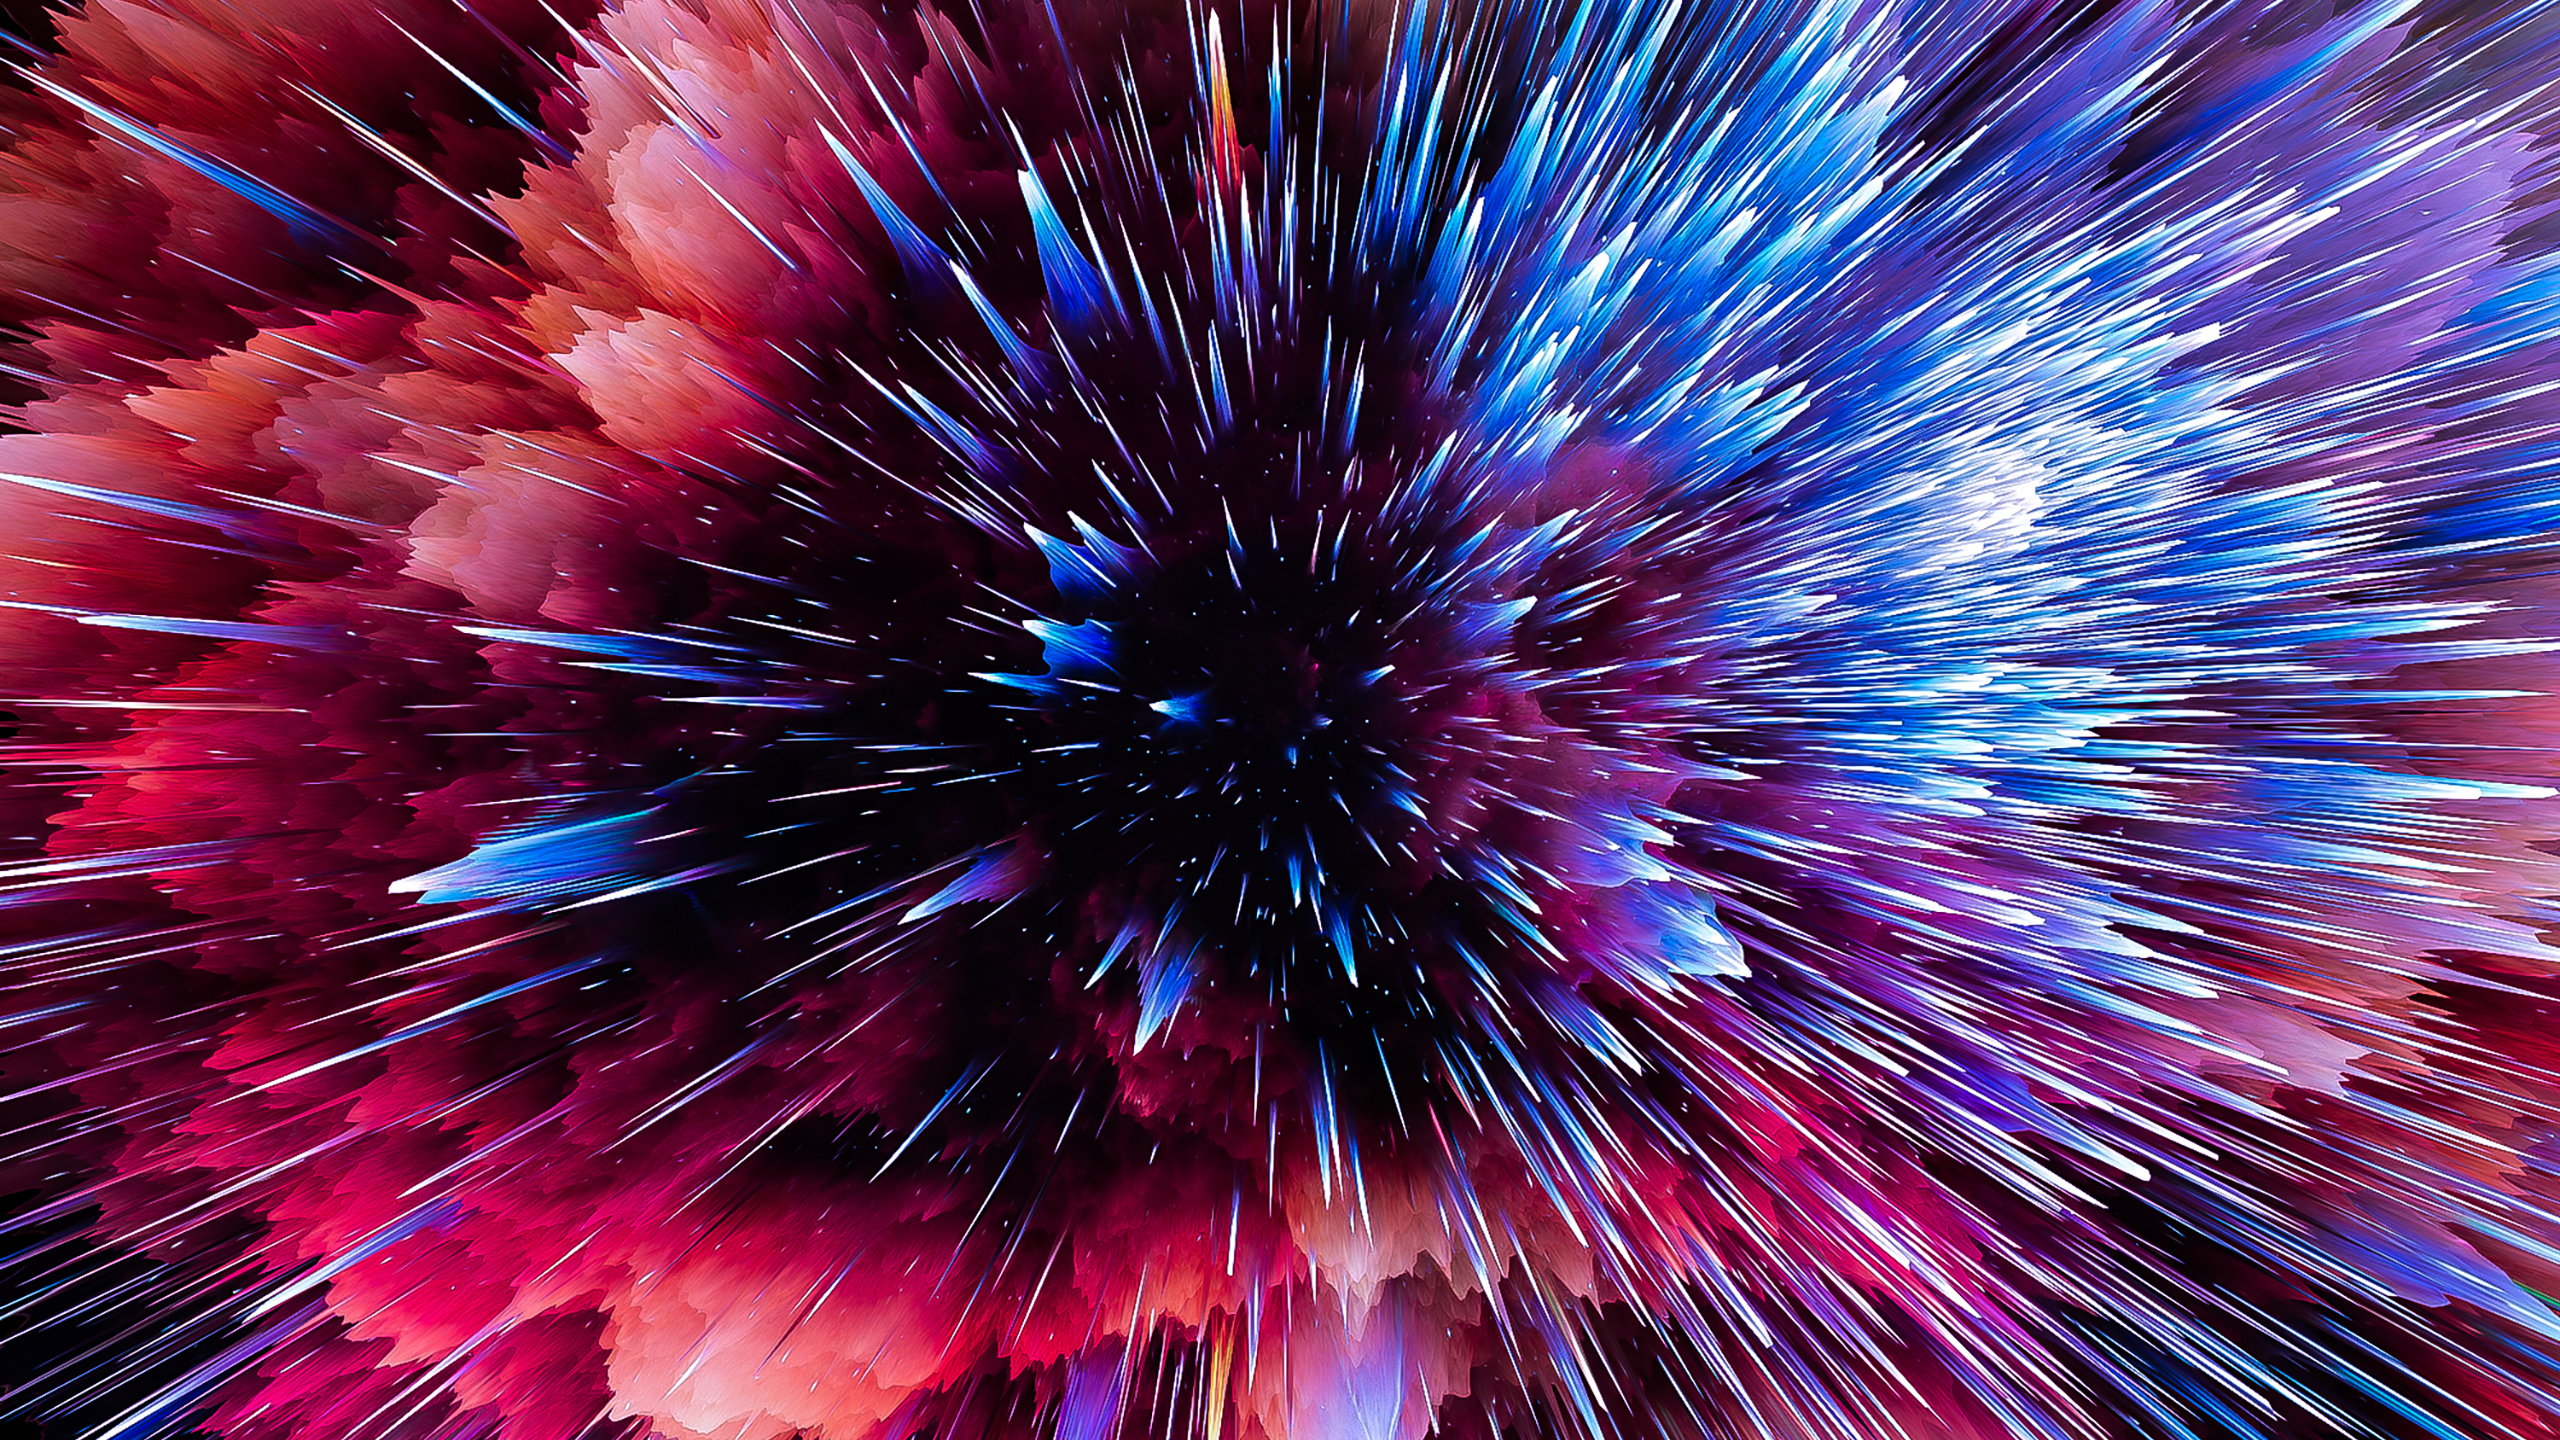 Farben Hd Wallpaper - Iphone X Space Explosions , HD Wallpaper & Backgrounds